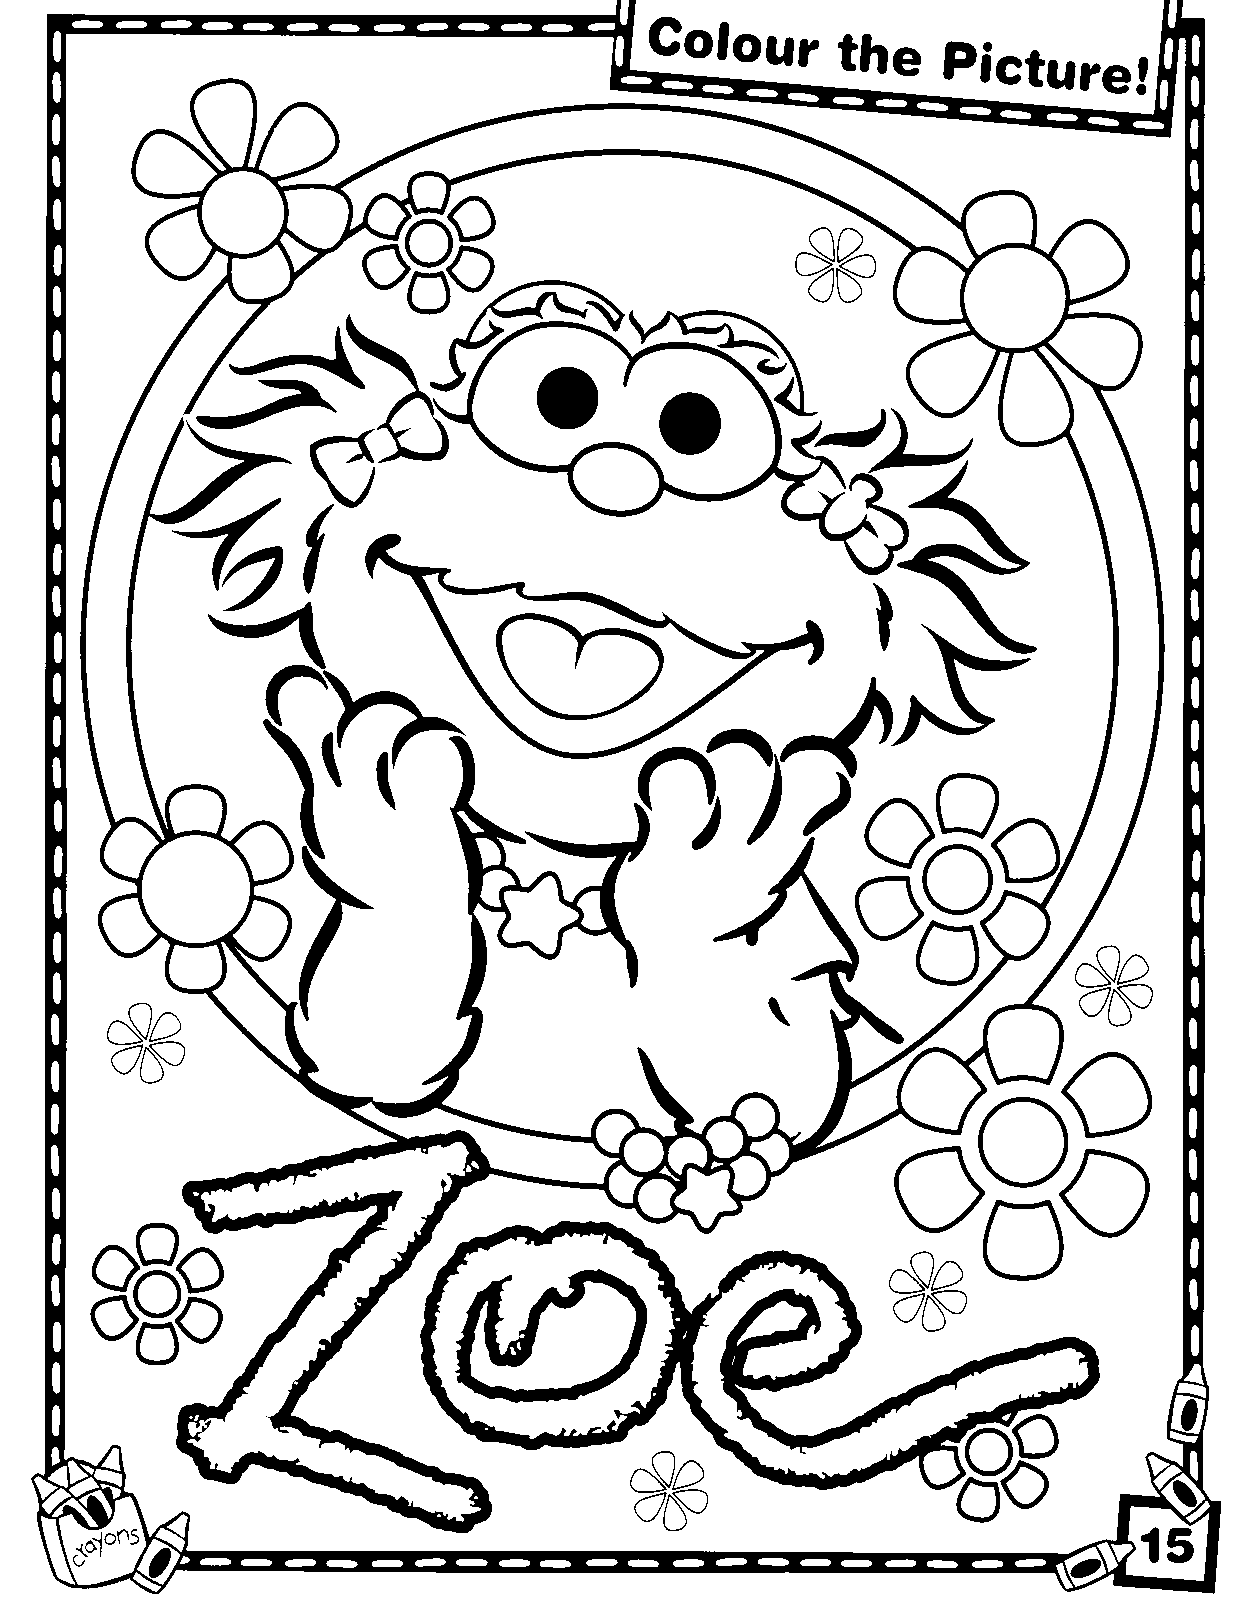 coloring sesame street printables sesame street coloring pages to download and print for free sesame street printables coloring